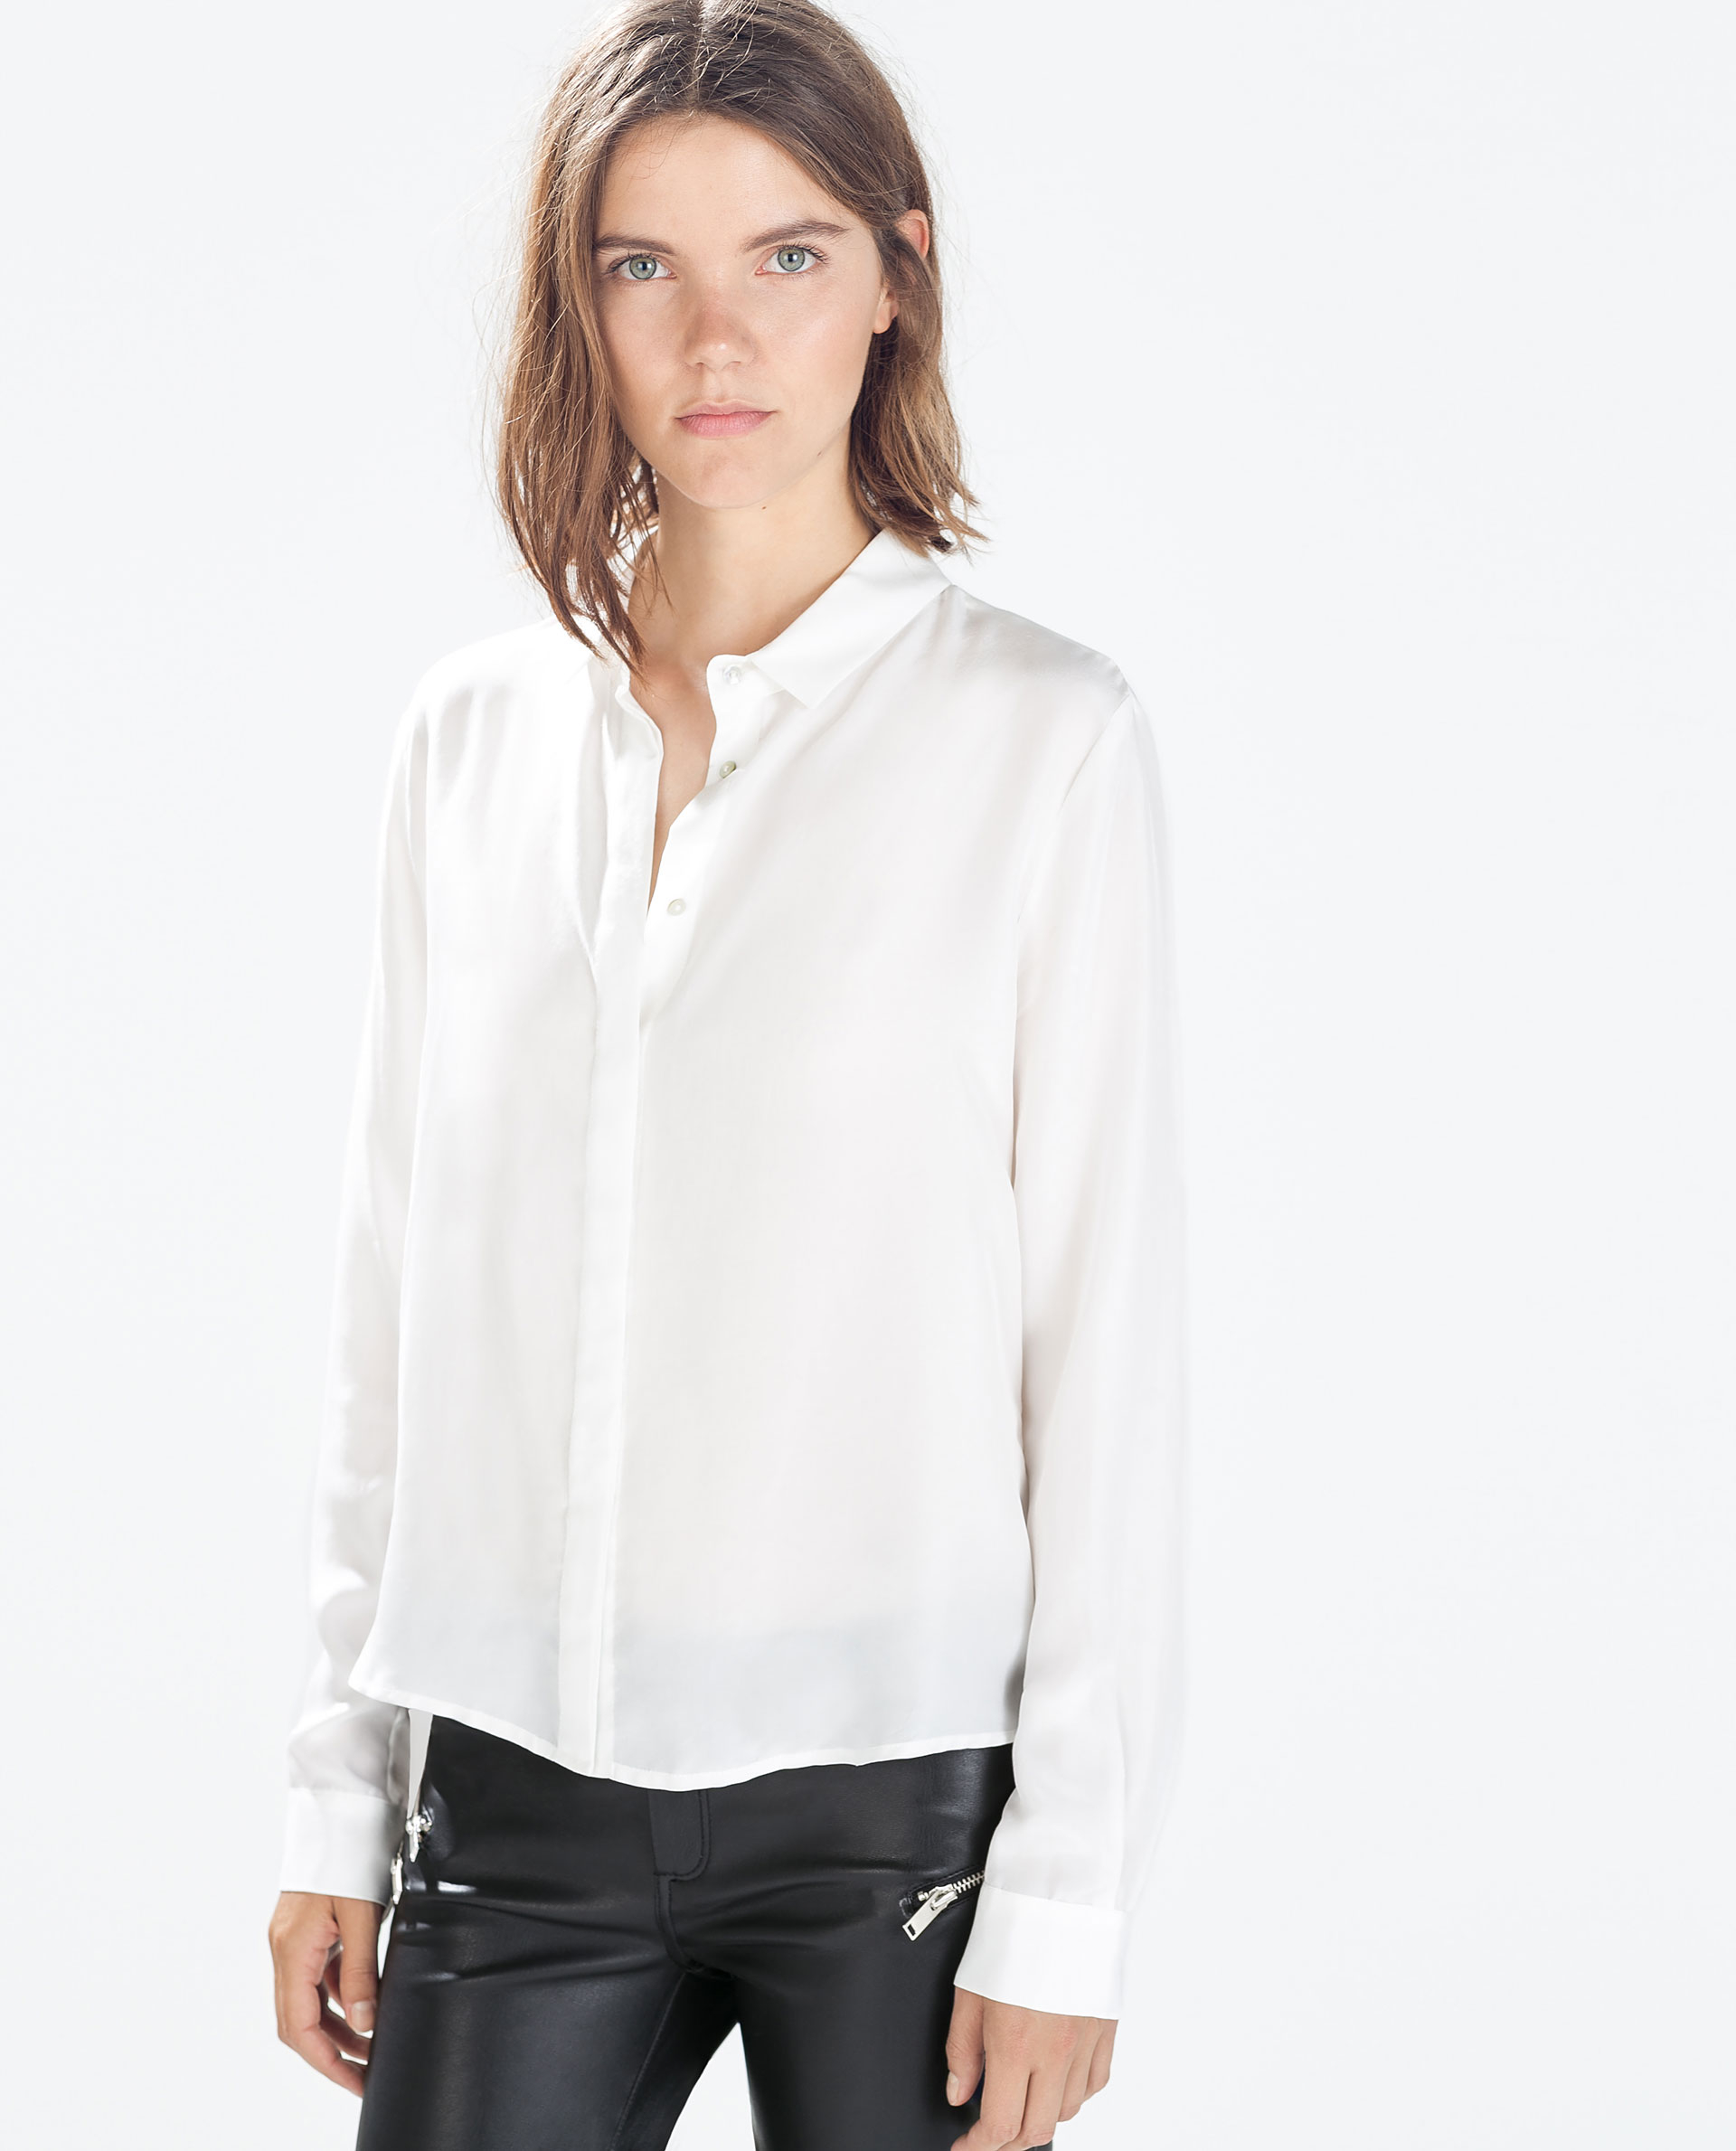 White Collar Blouse - Long Blouse With Pants